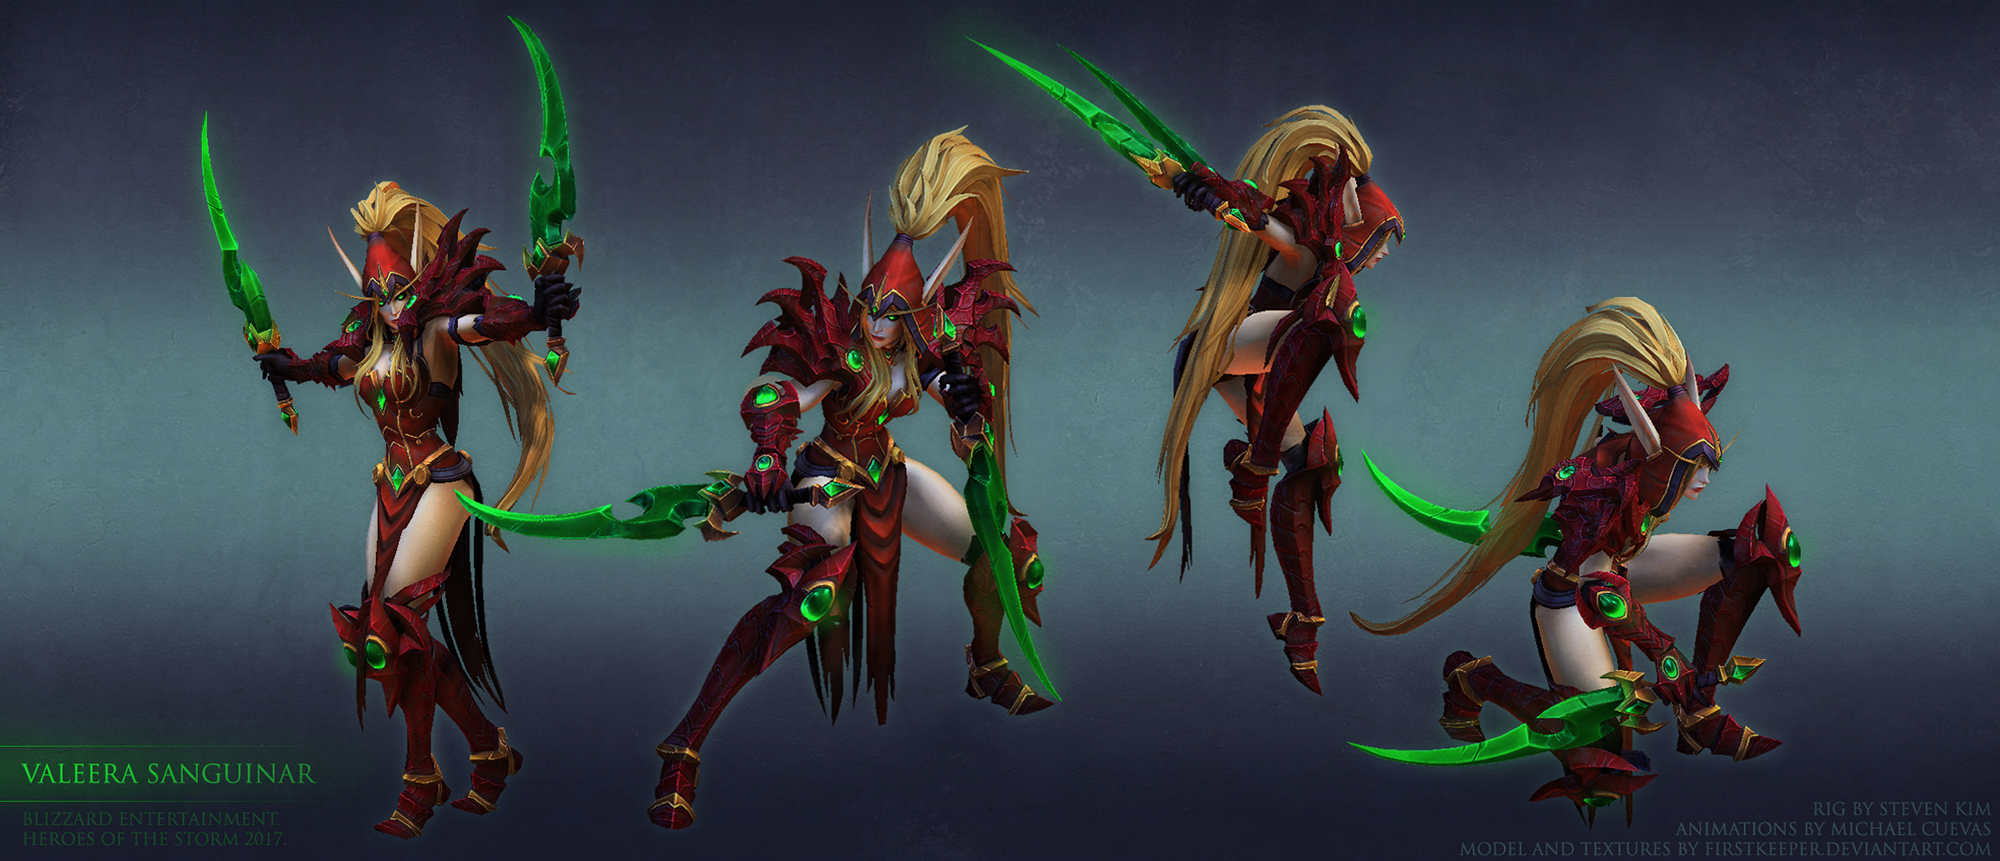 Valeera Base Poses By Firstkeeper On Deviantart This isn't much of a build guide, more a quick explanation of one of hotslogs higher win rate builds on how you're supposed to. valeera base poses by firstkeeper on